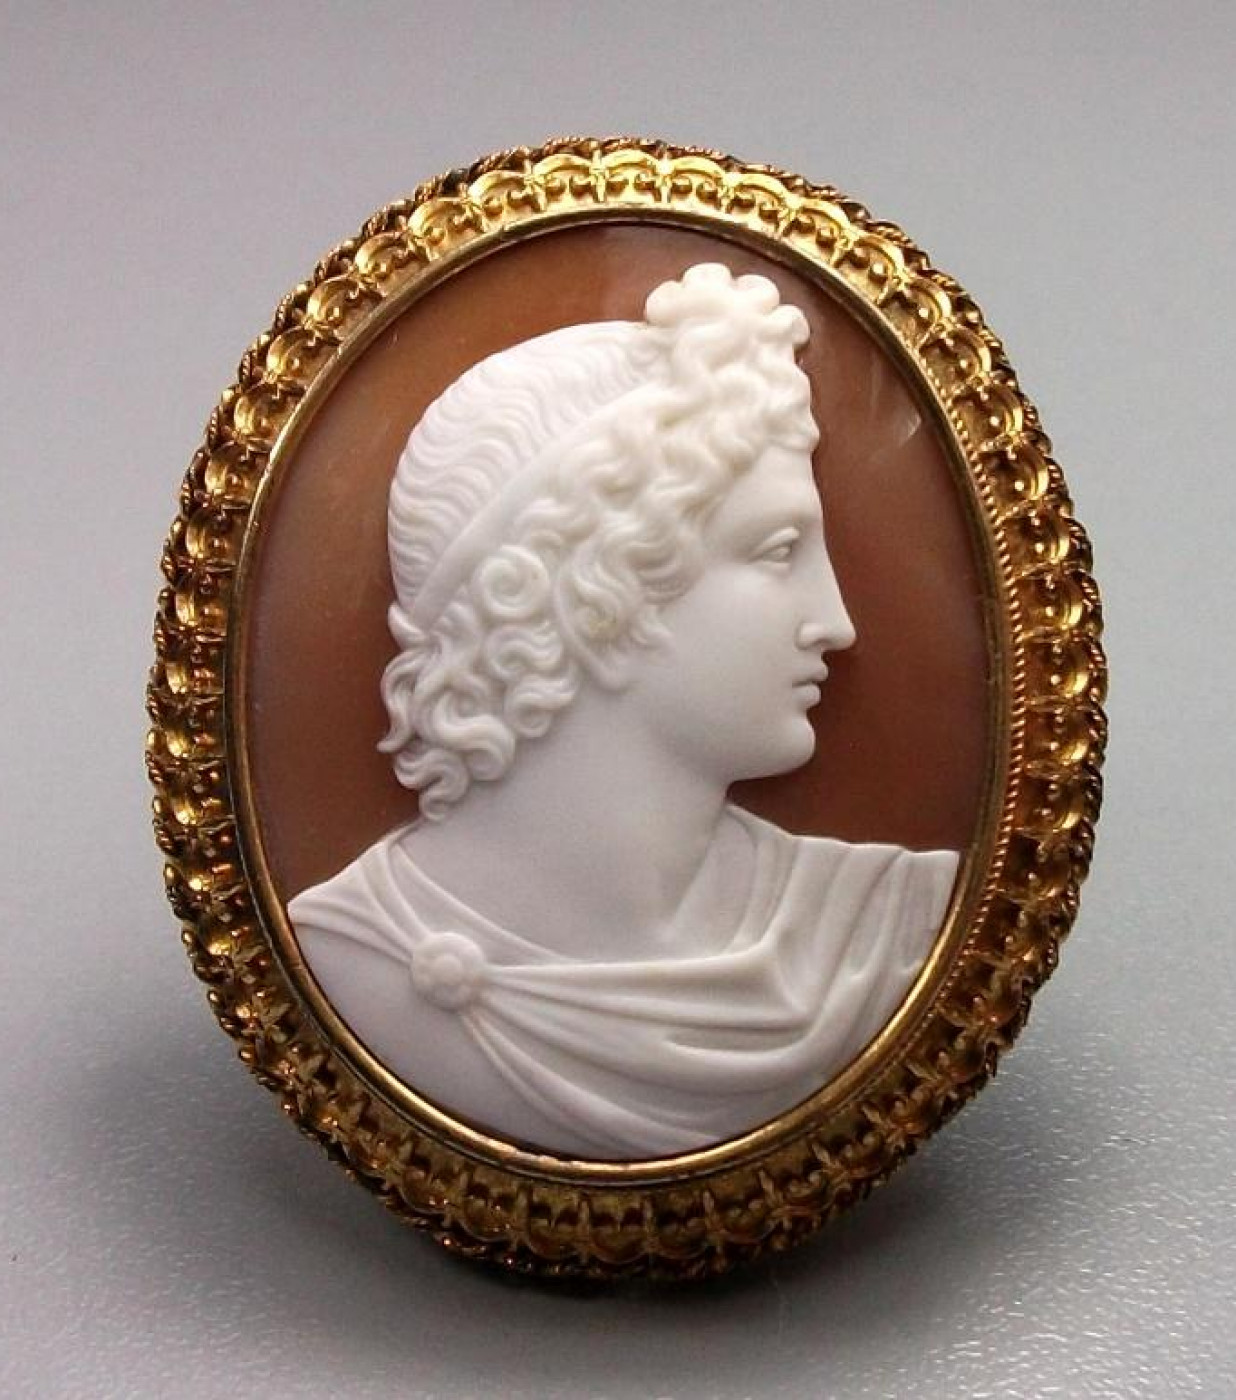 Shell Cameo Brooch of Apollo Belvedere